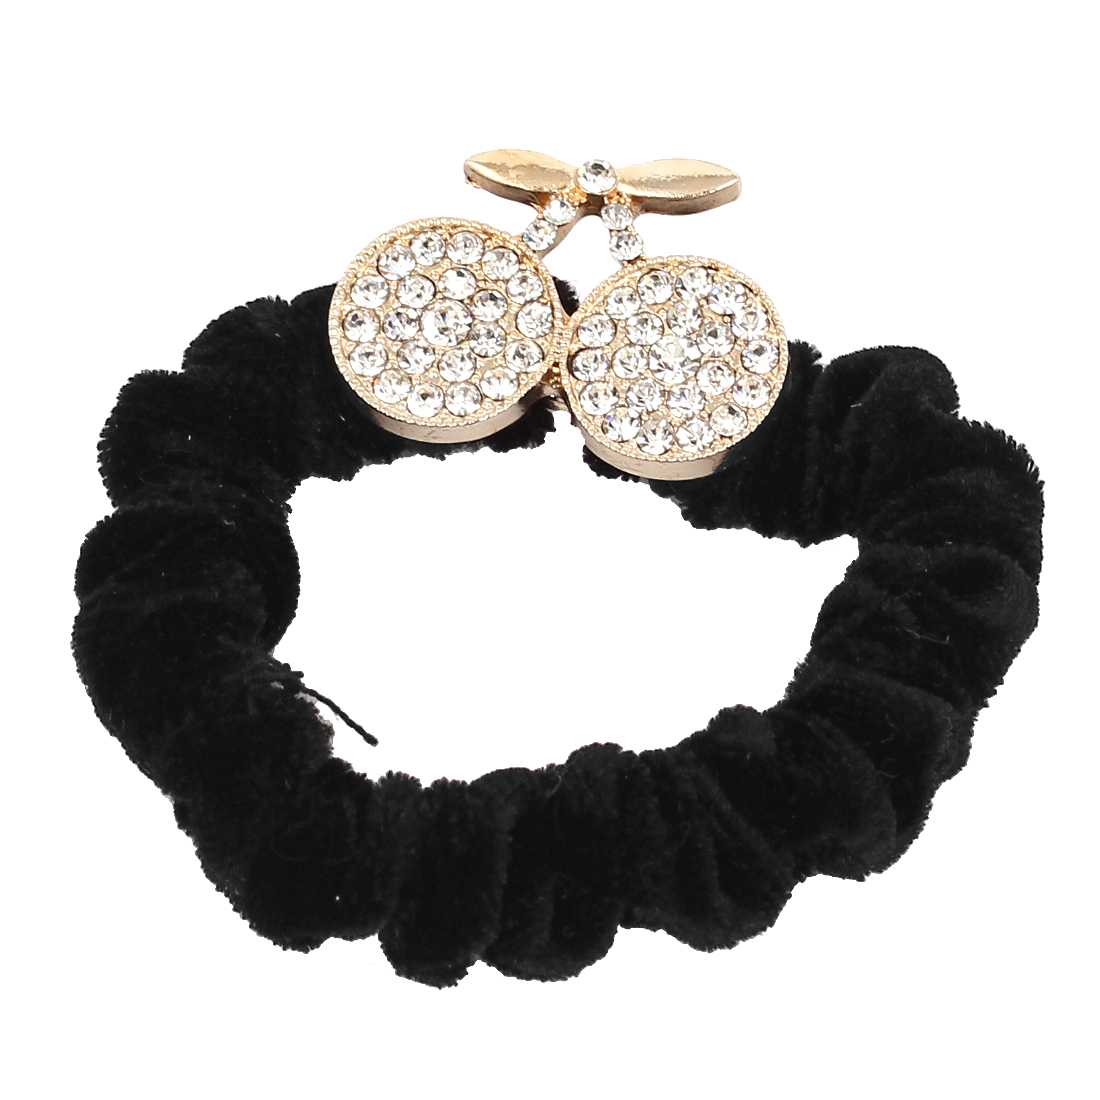 Lady White Sparkly Rhinestone Inlaid Two Cherries Design Detail Elastic Hair Tie Ponytail Holder